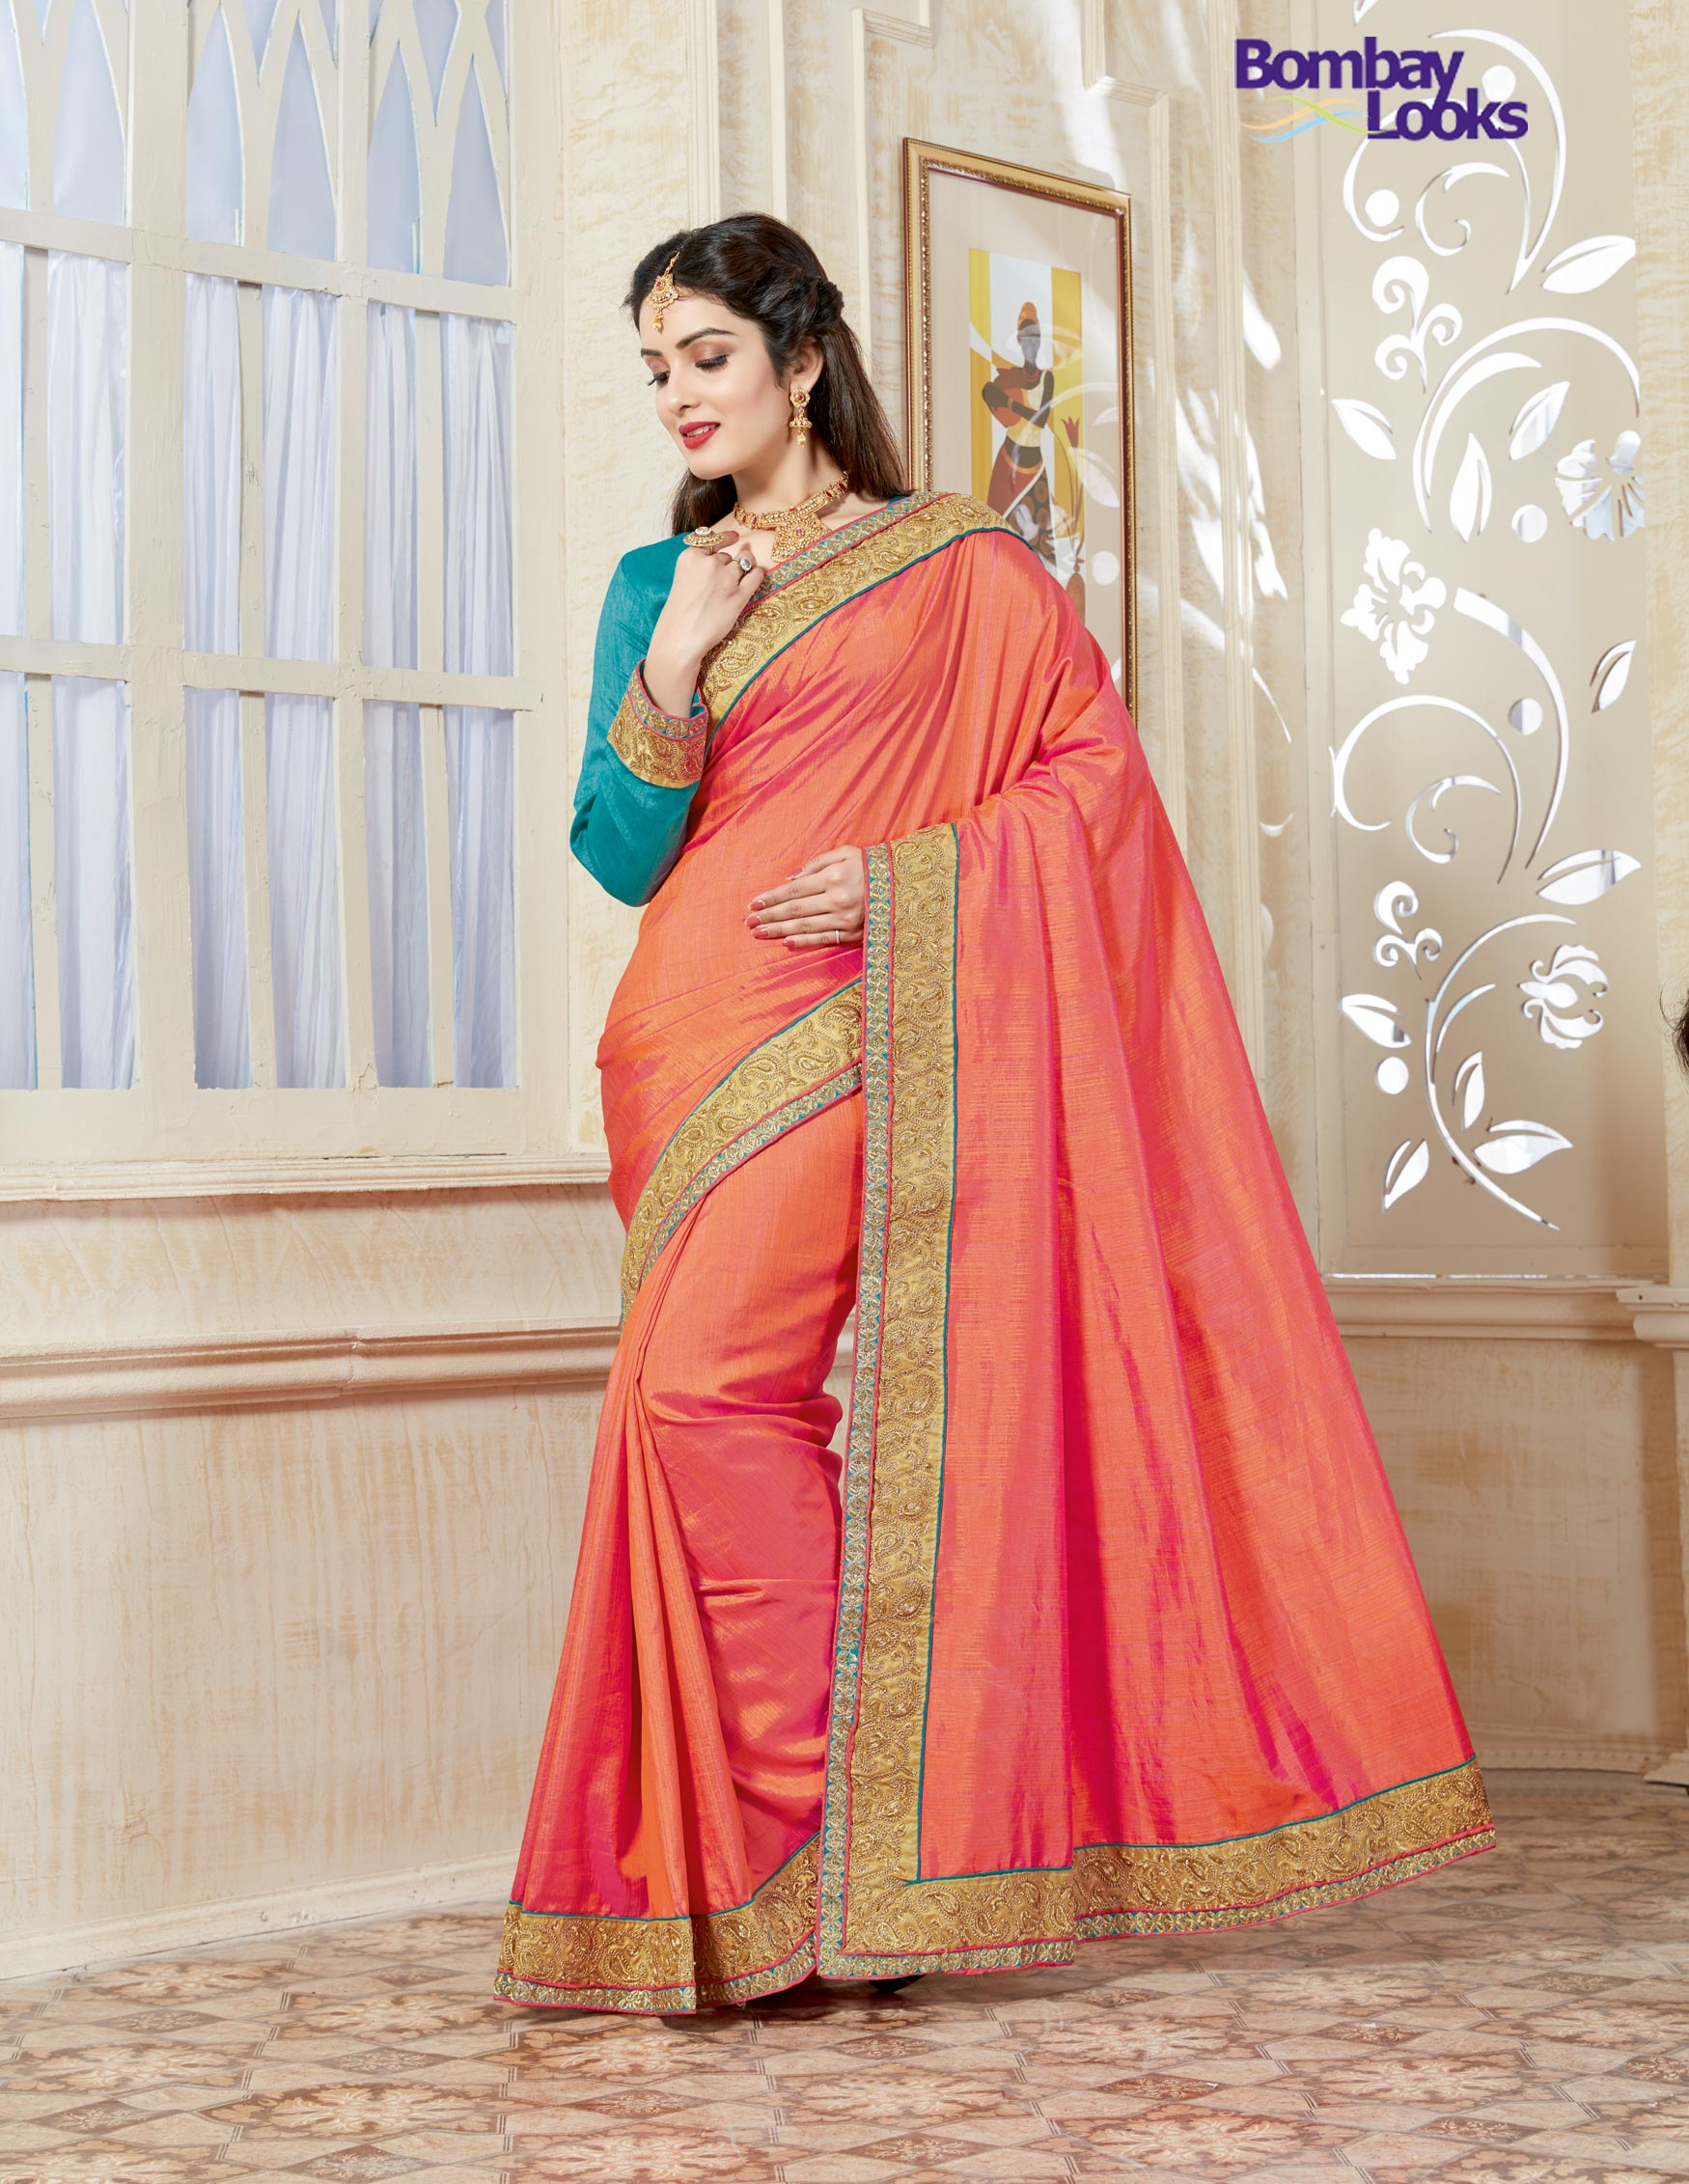 Soft peach and turqouise green dual tone saree with golden borders and full sleeved blouse